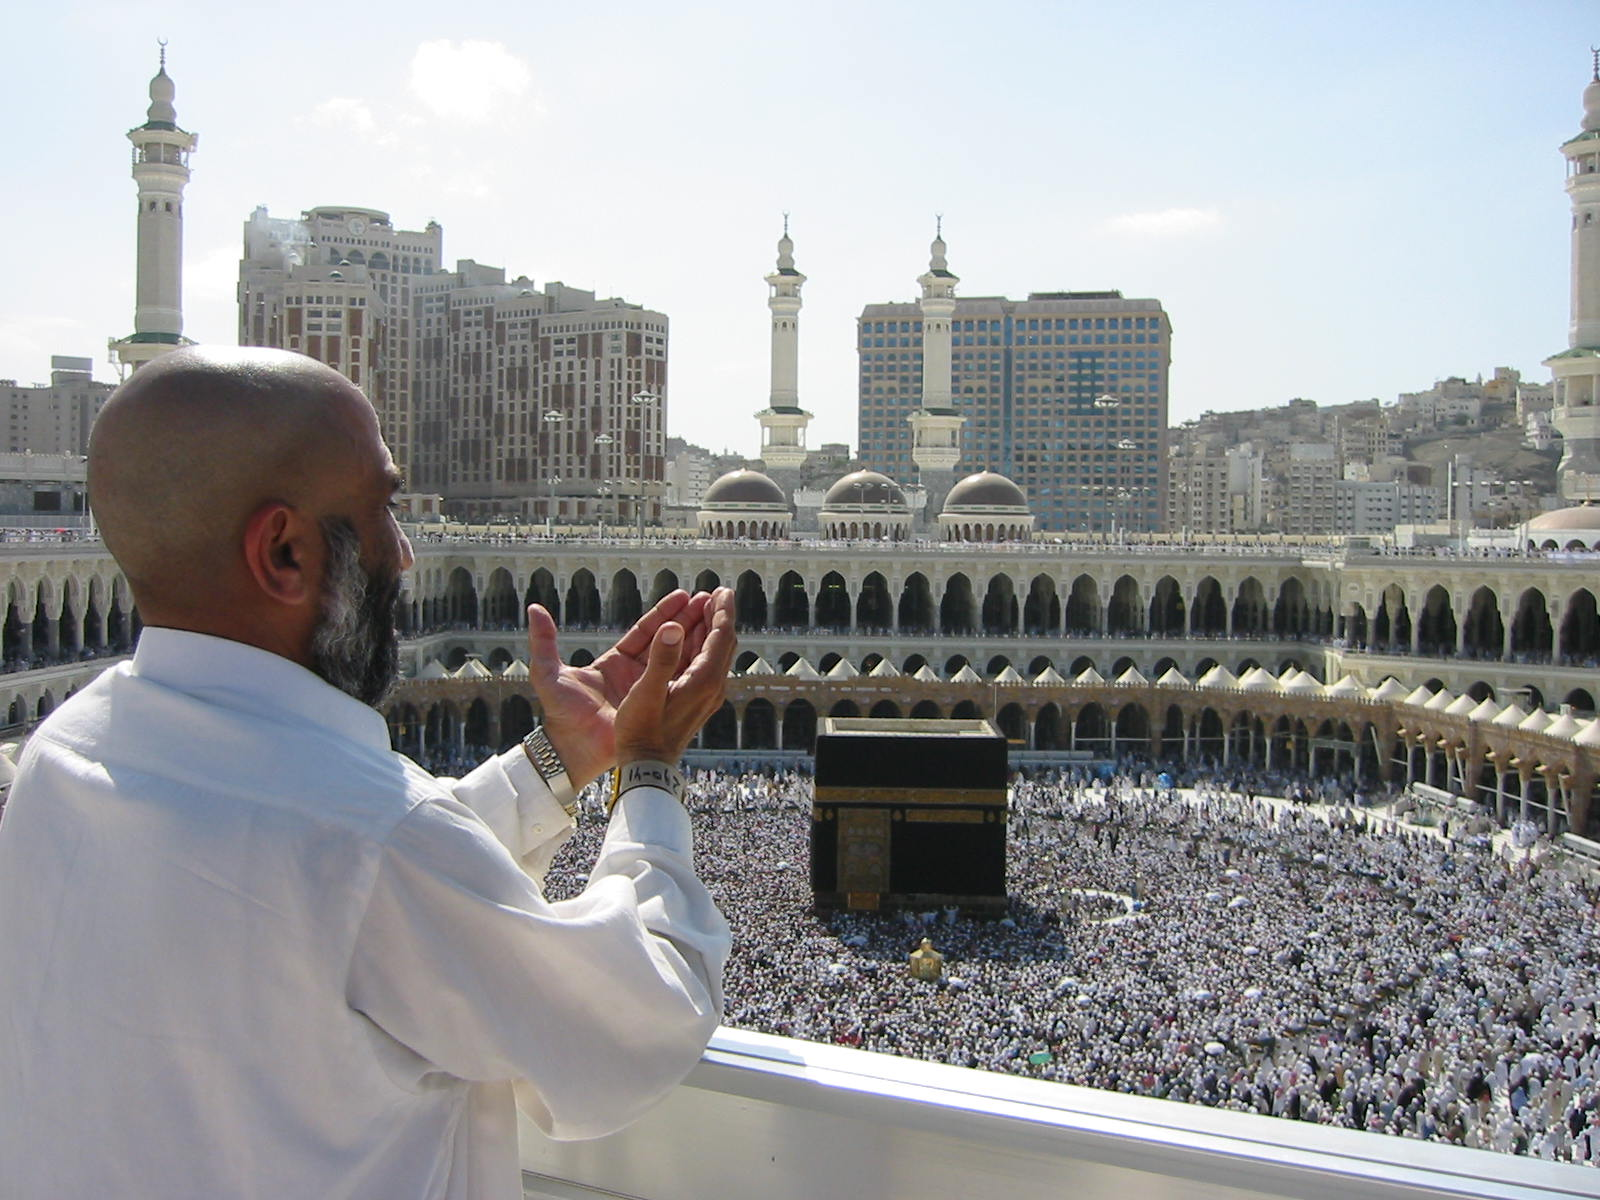 Haj Committee of India has decided to extend the date of submission of original passports of NRI Haj pilgrims to April 30.